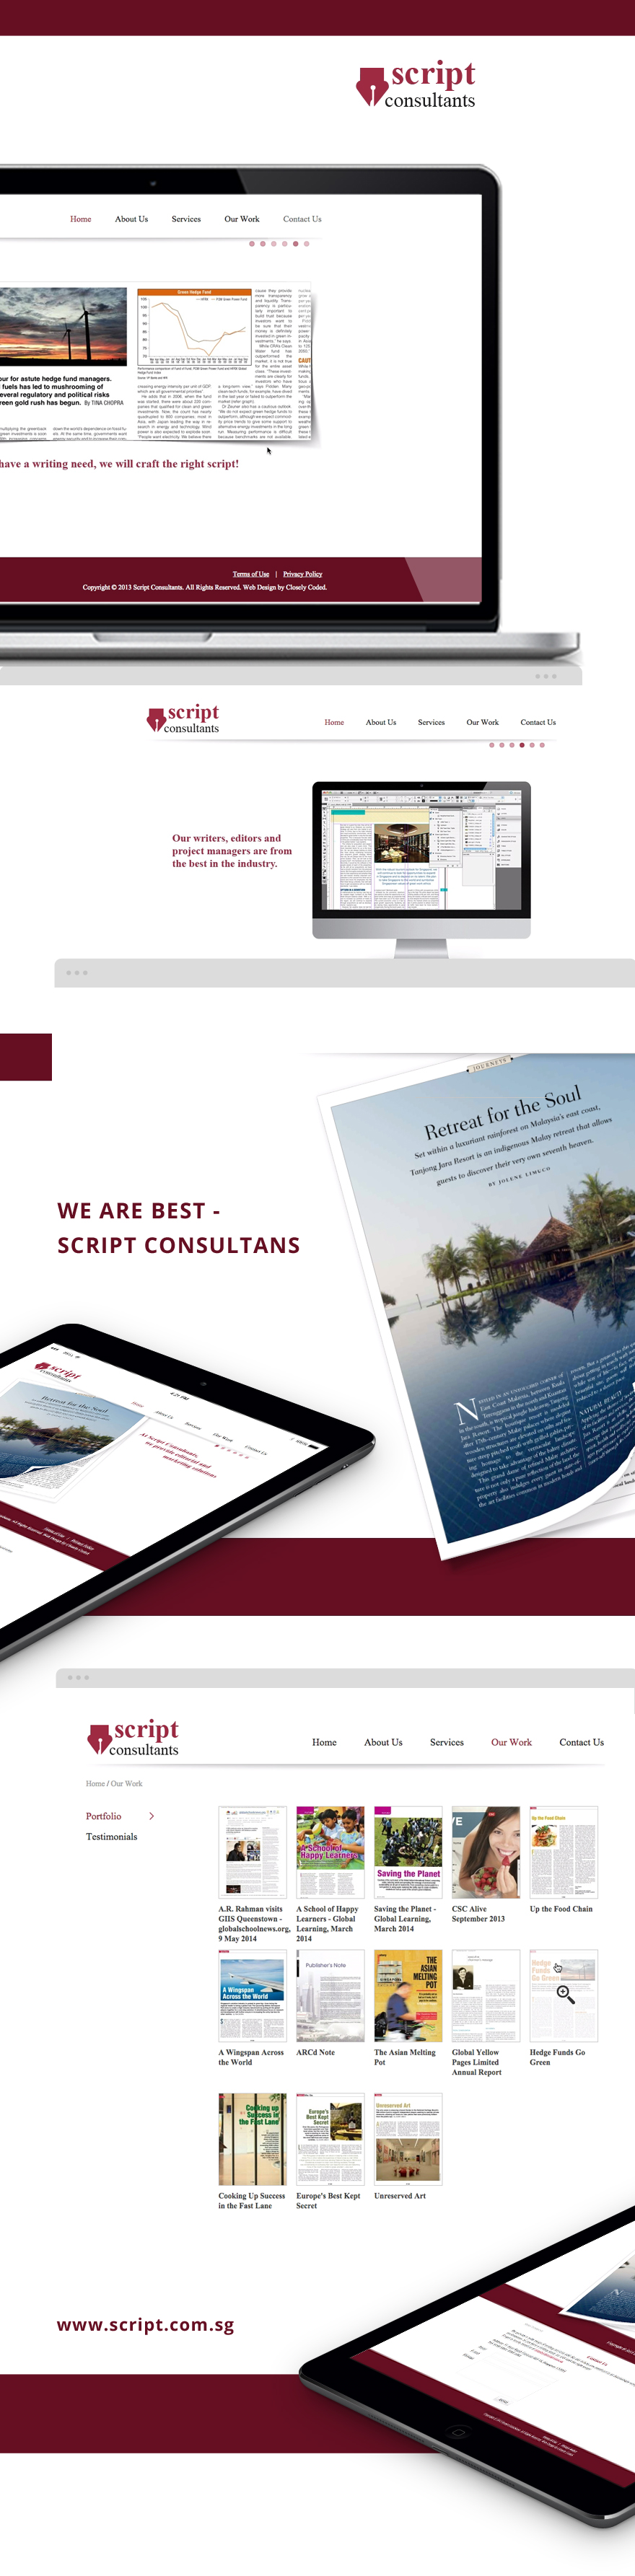 Projects - Script Consultants